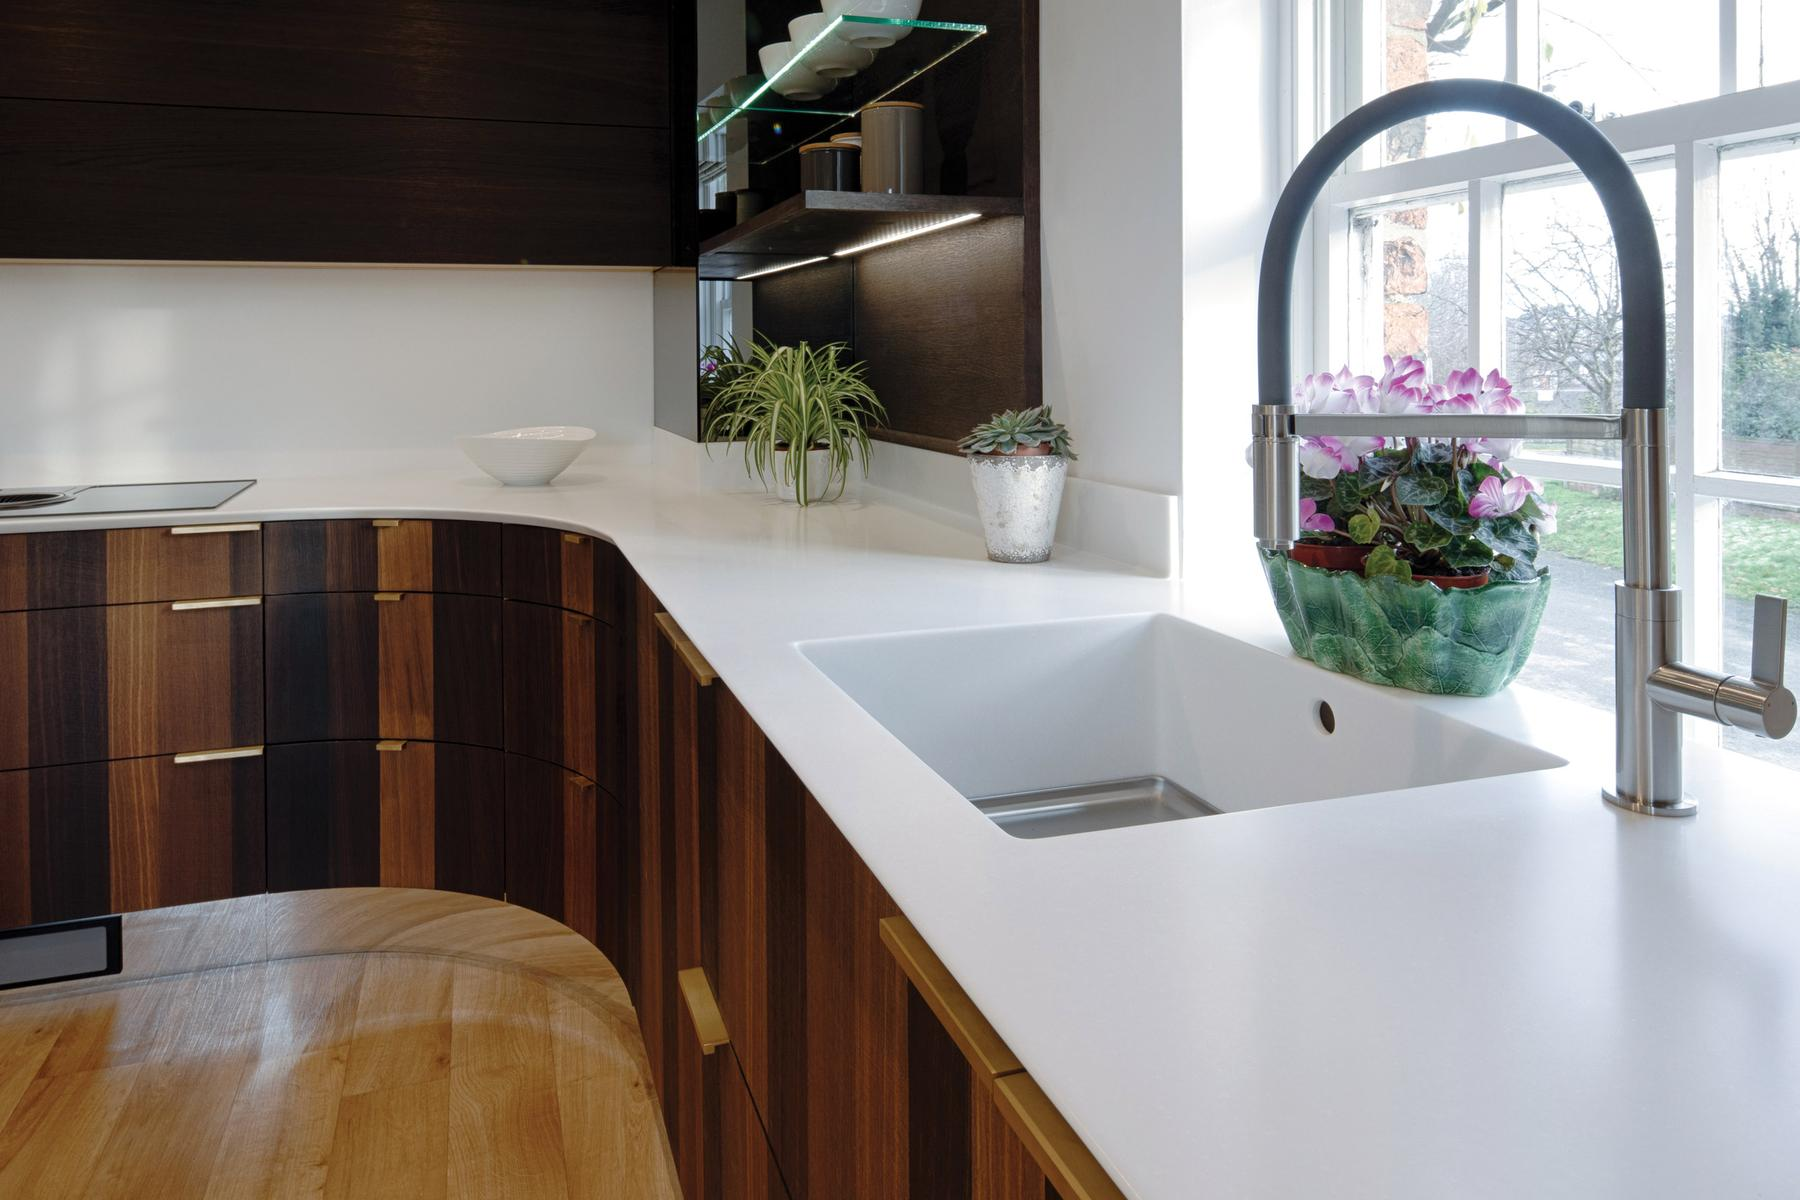 Montpellier worktops